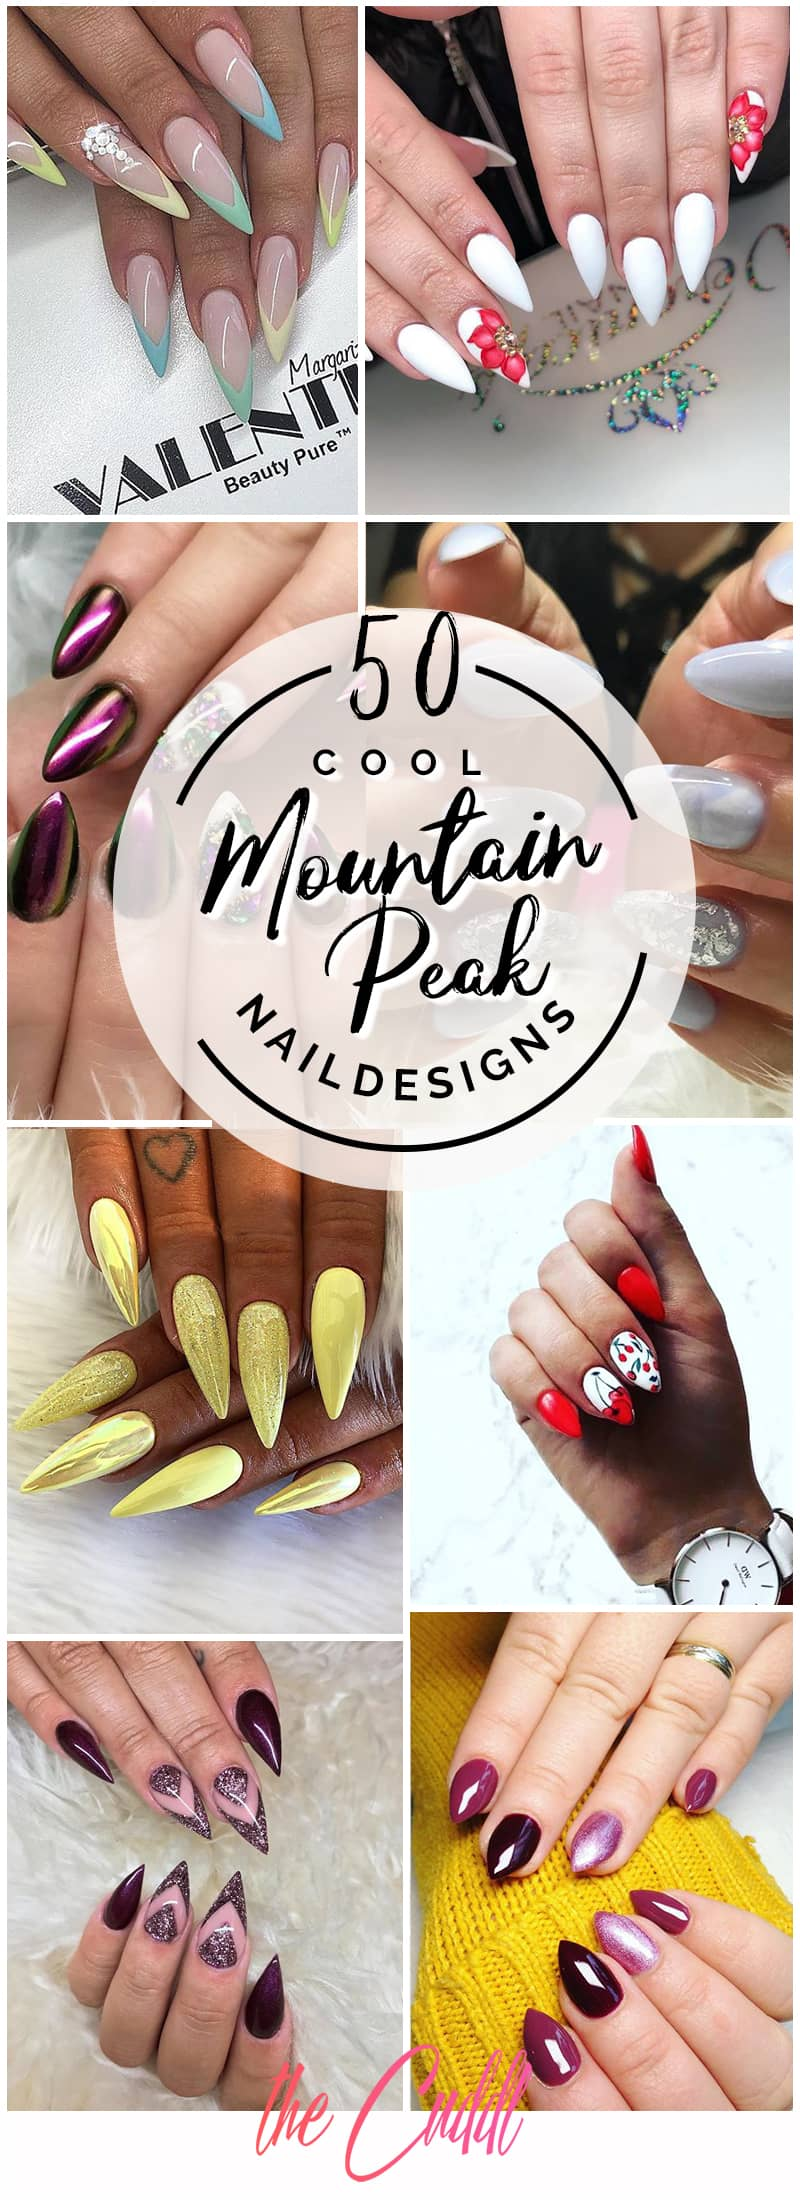 50 Stunning Mountain Peak Nail Ideas That You'll Fall in Love With